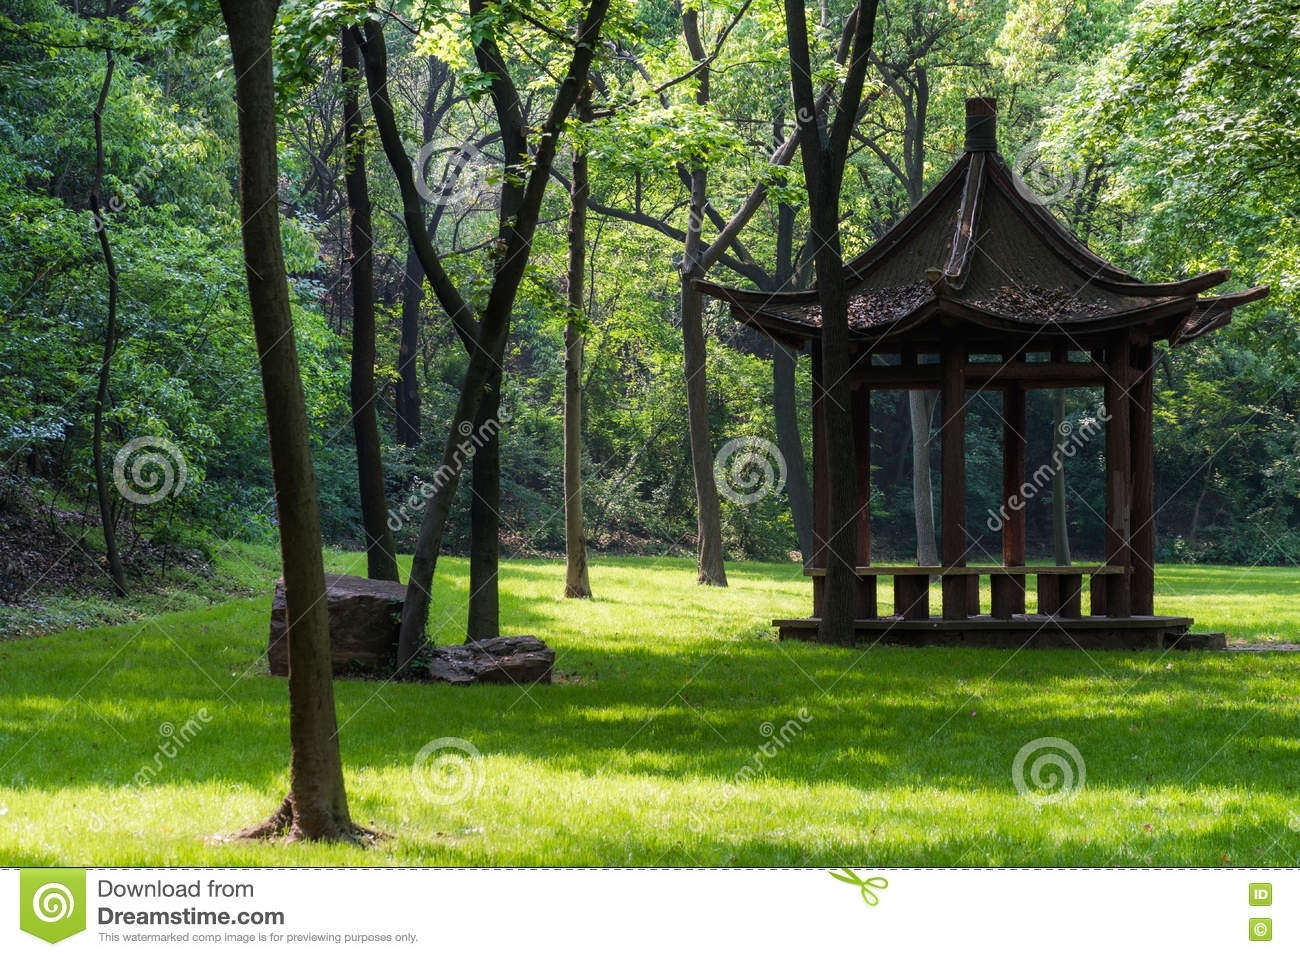 Gazebo In The Forest Stock Image. Image Of Maryland, Architecture inside Garden House Of Park Forest